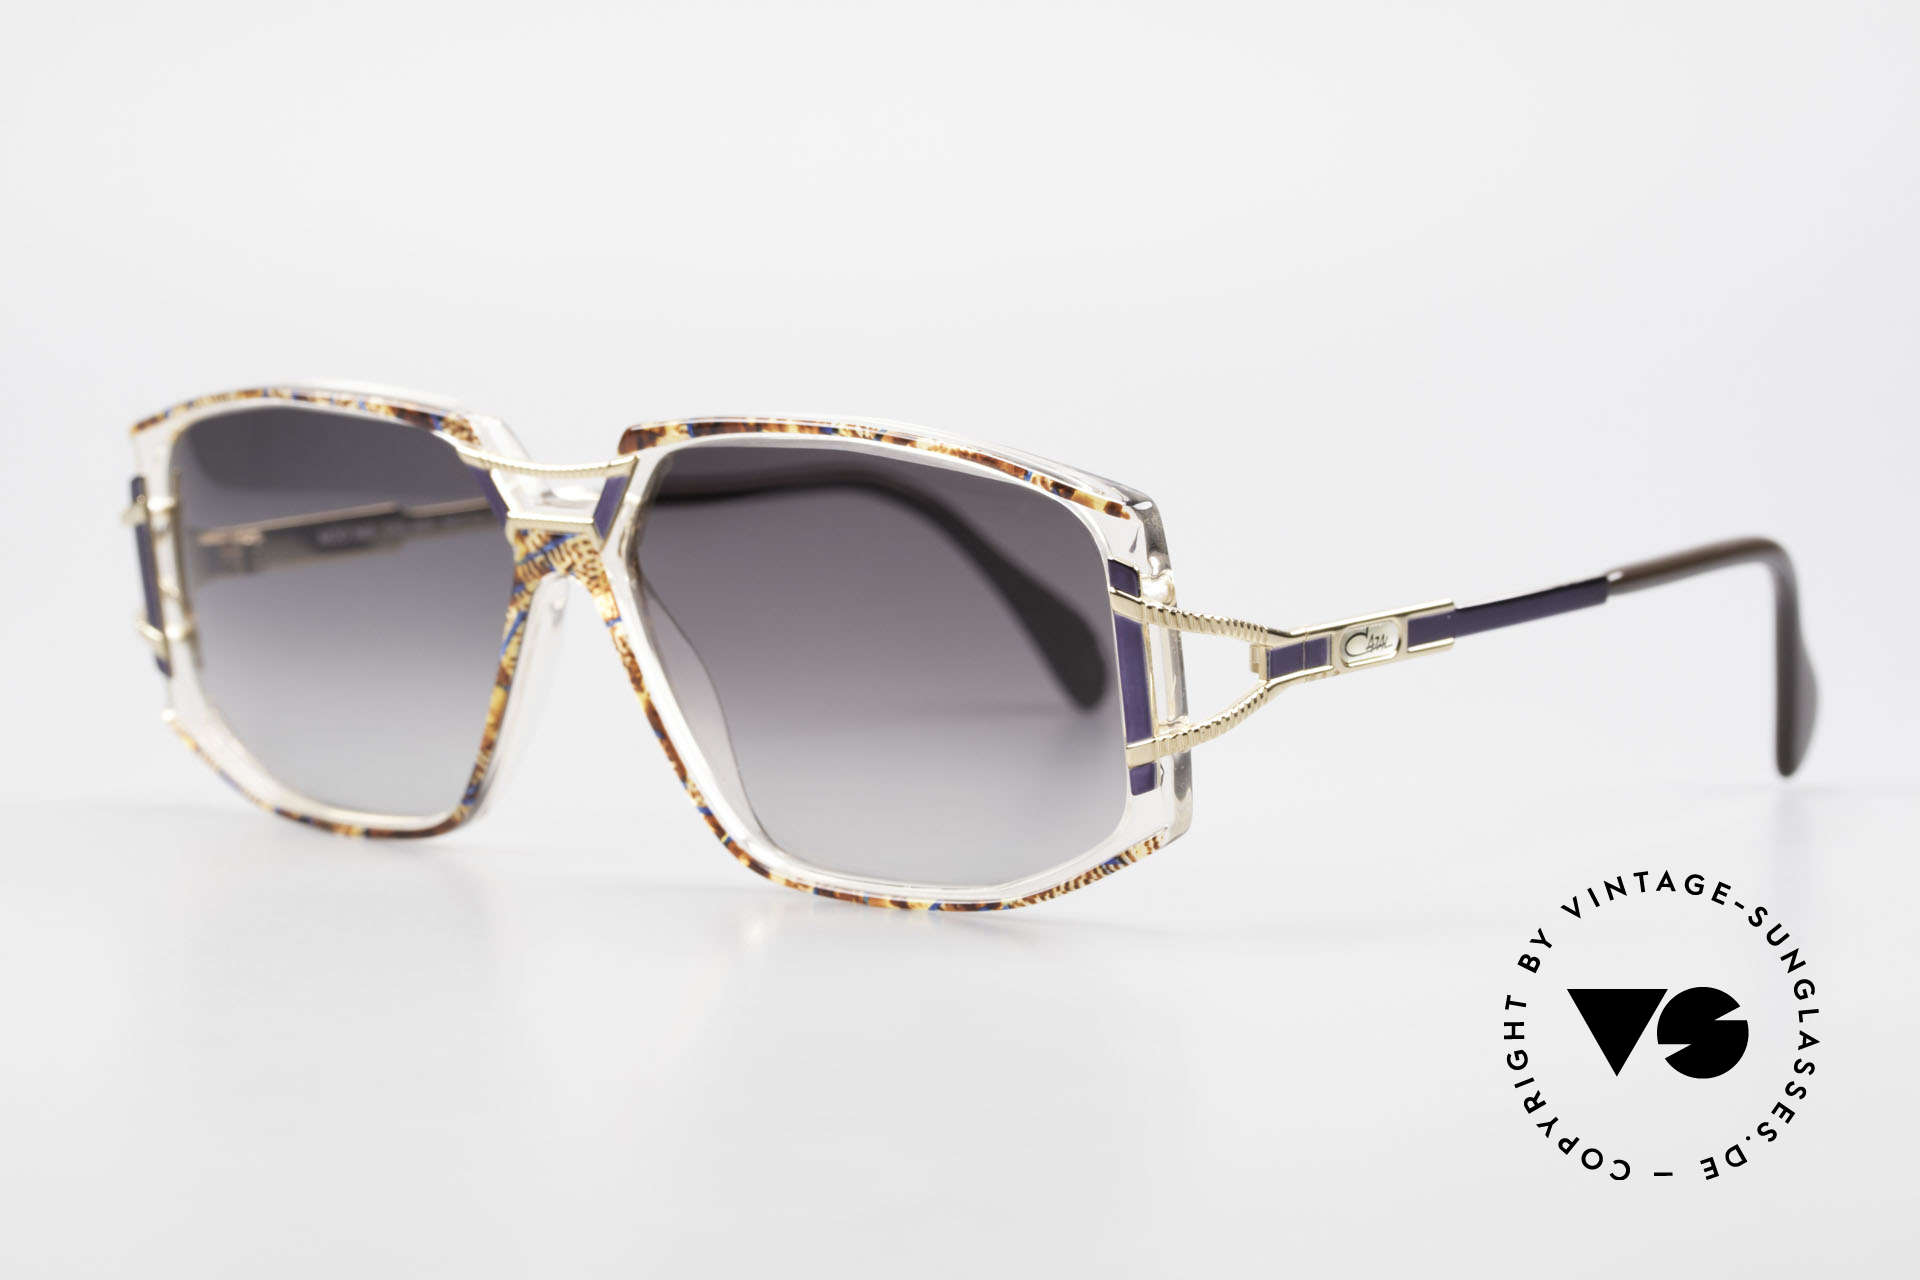 Cazal 362 Original 90's Cazal Sunglasses, glamorous combination of materials and colors; fancy!, Made for Women